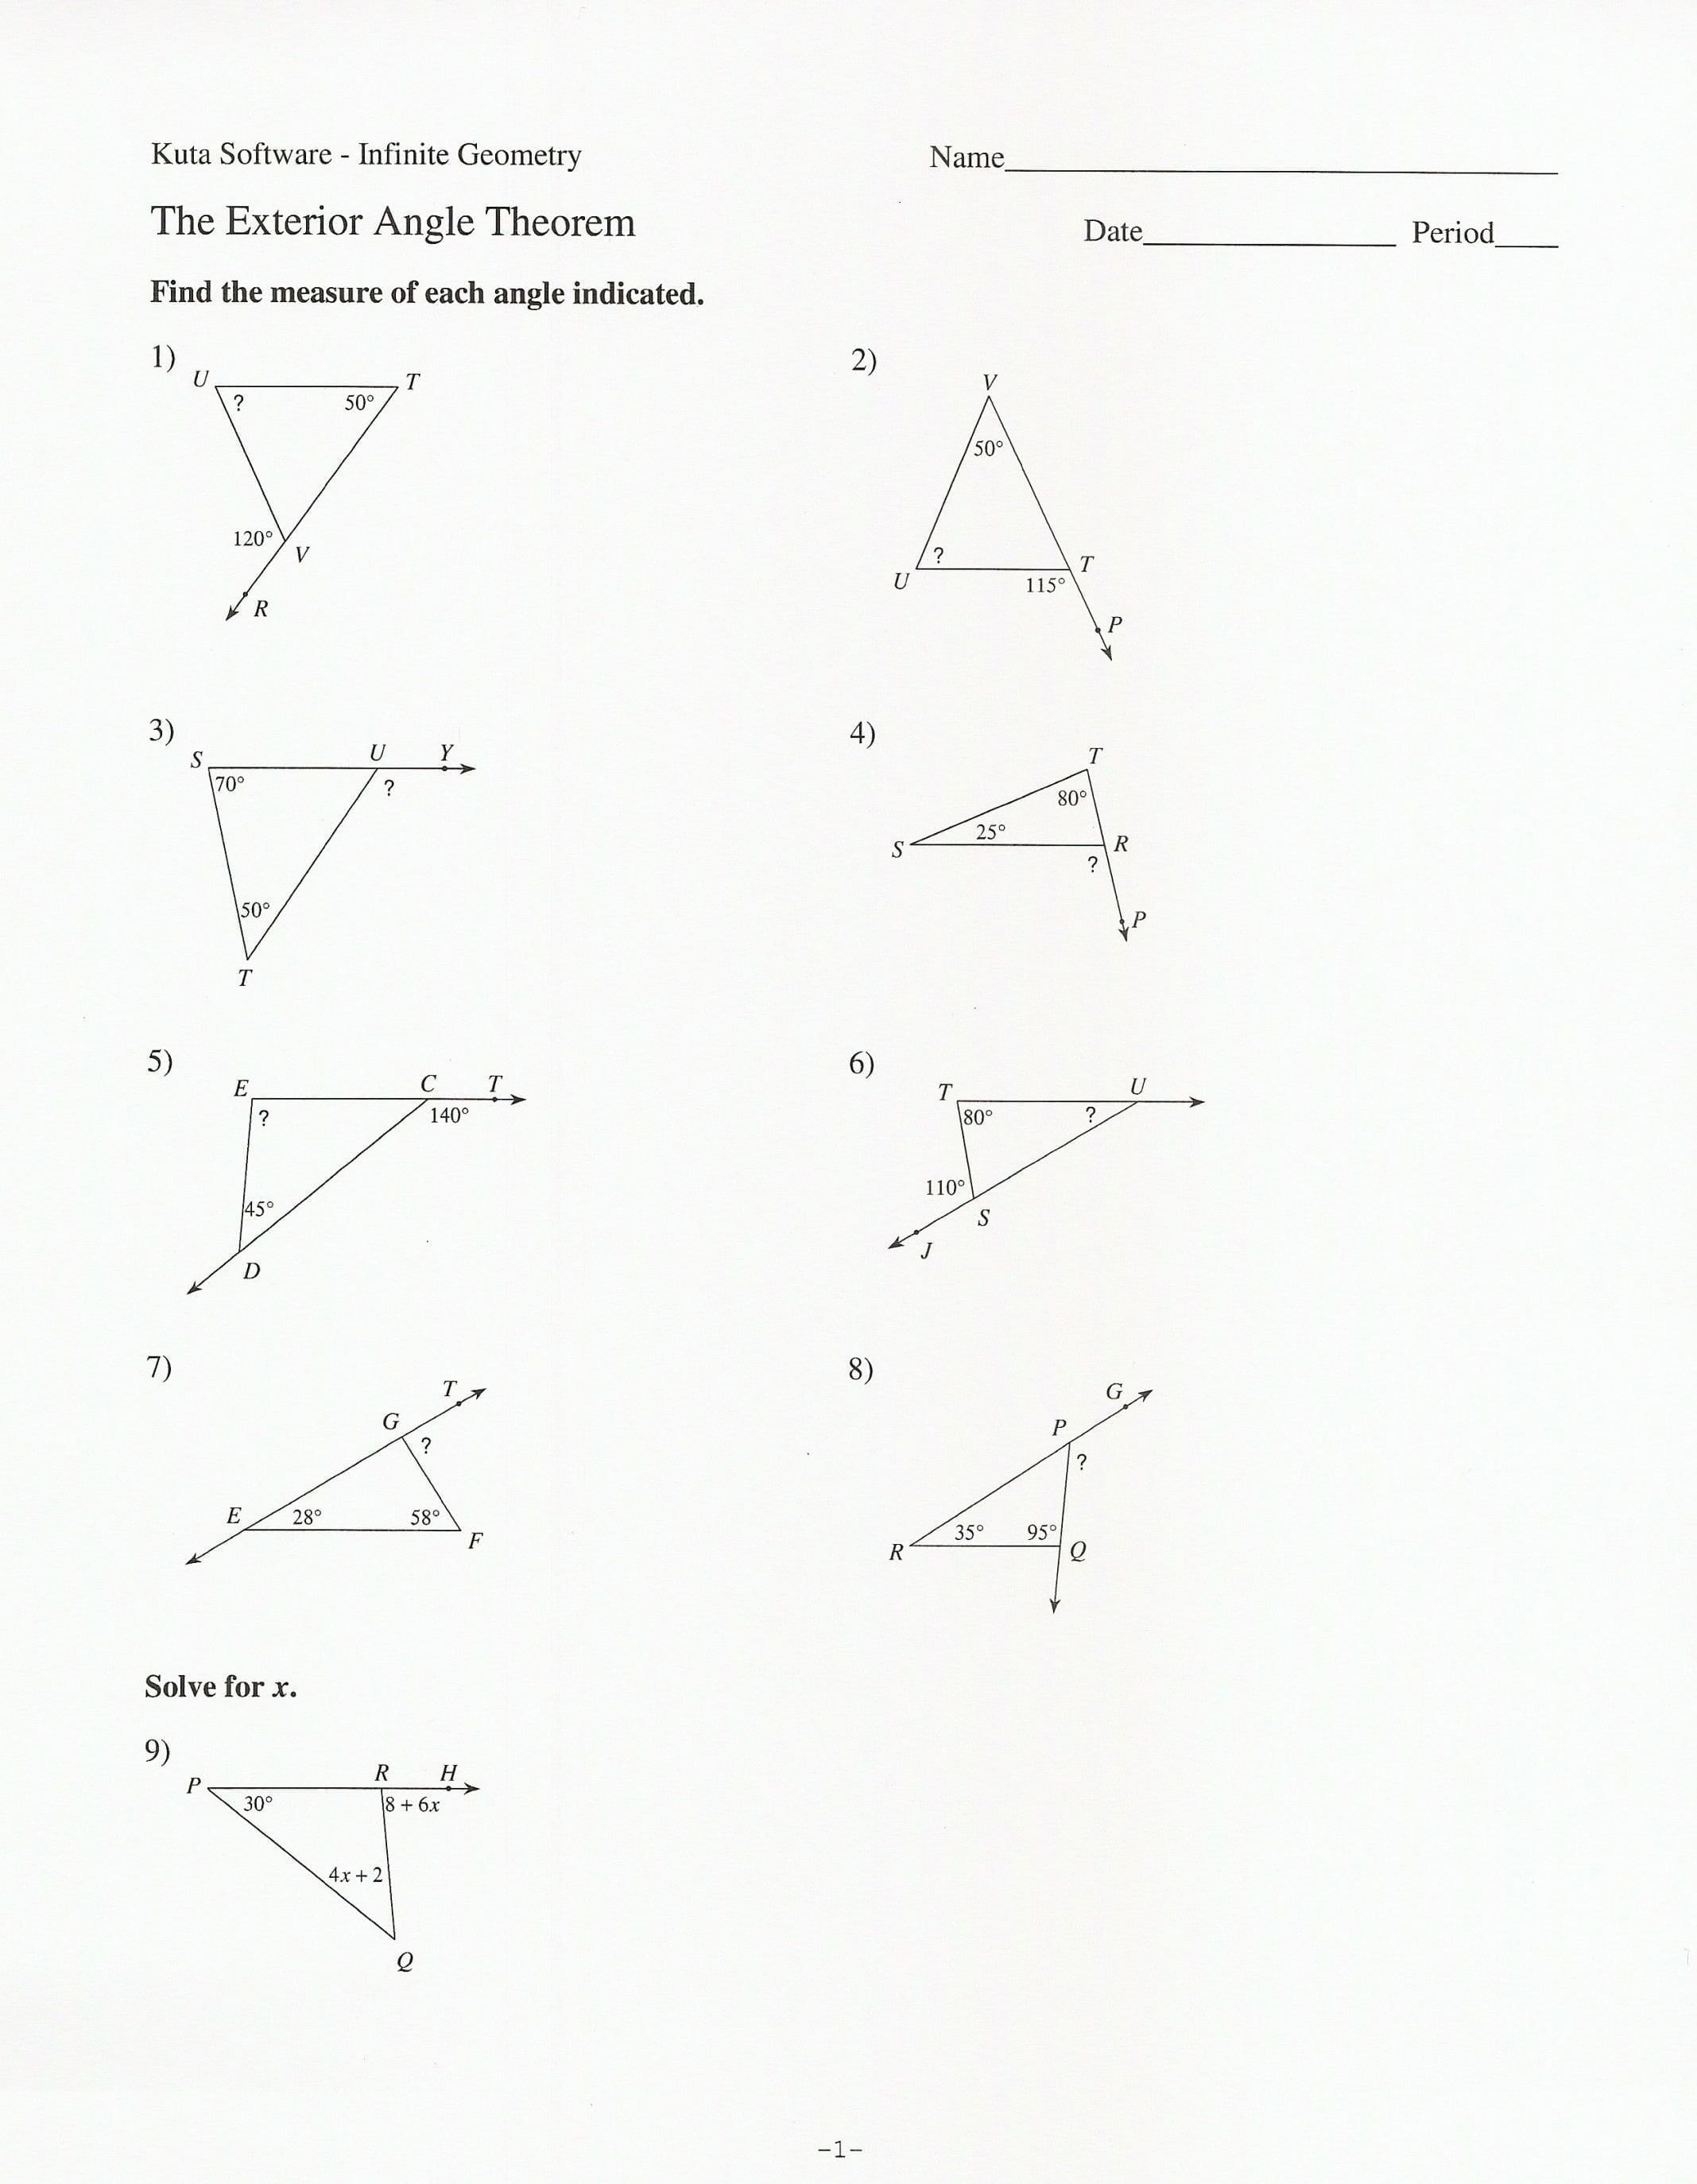 Triangle Angle Sum Theorem C Triangle Sum And Exterior Angle Theorem Along With Triangle Sum And Exterior Angle Theorem Worksheet